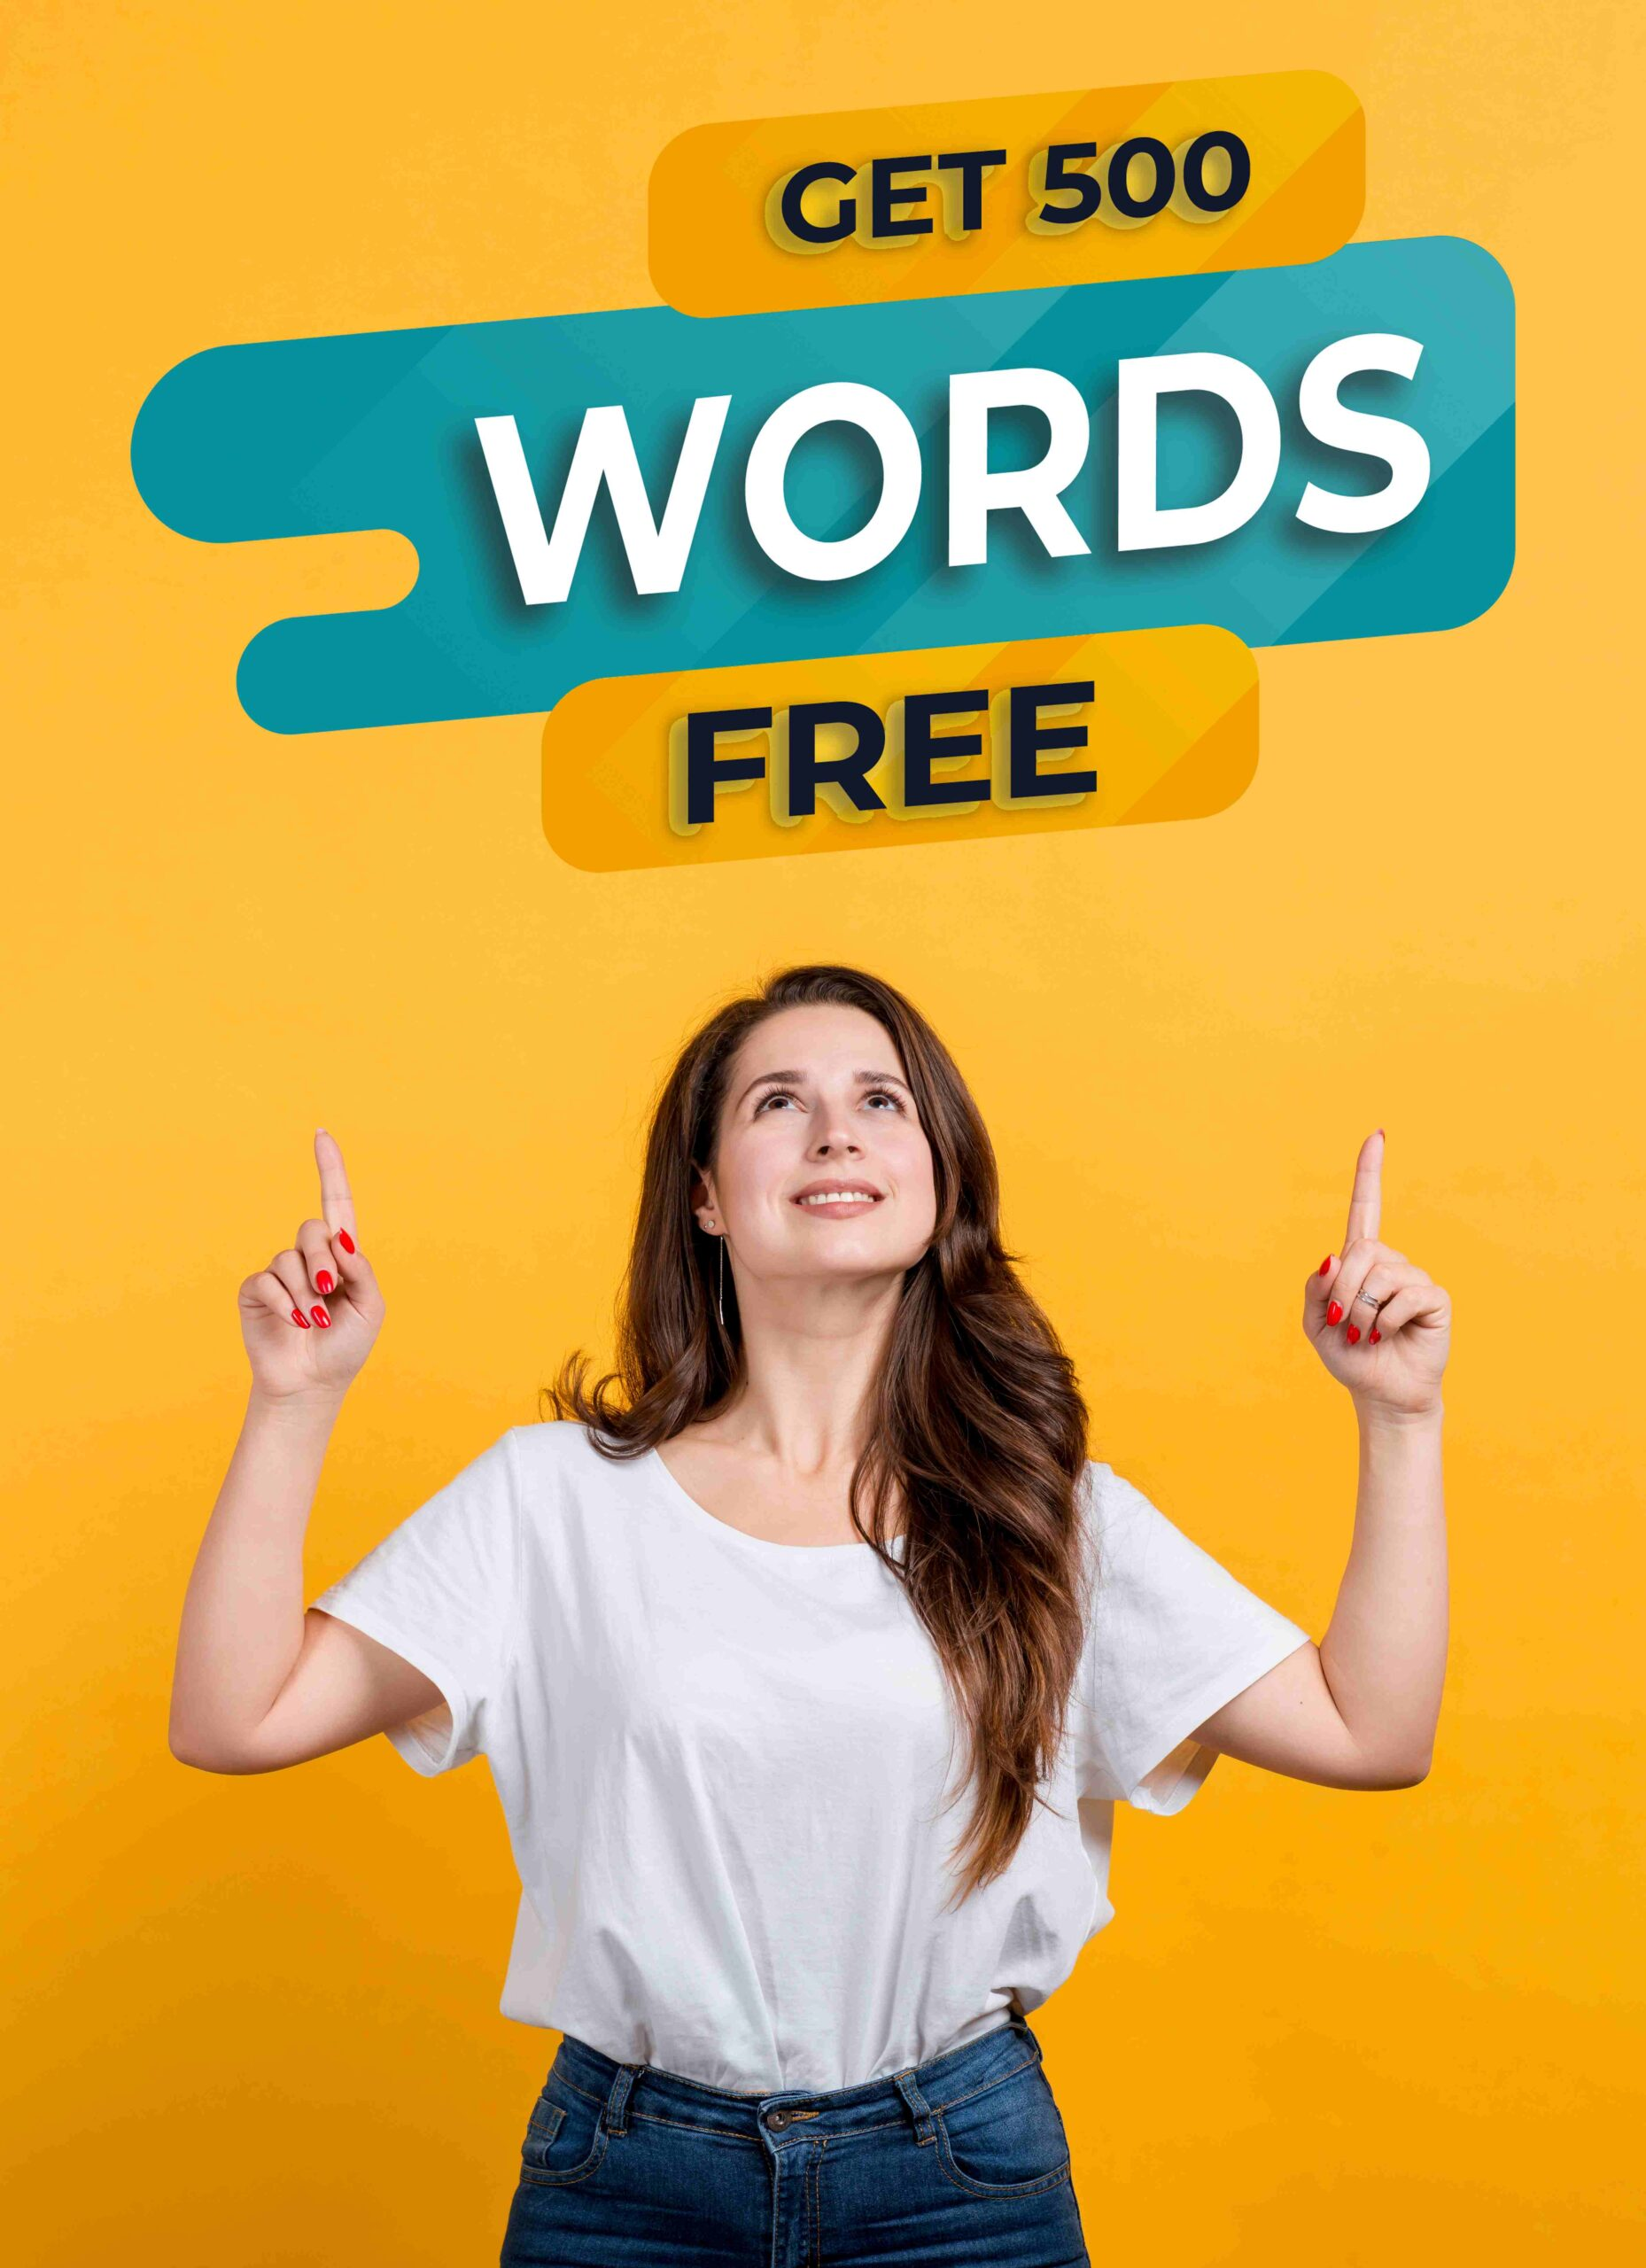 500 words free offer